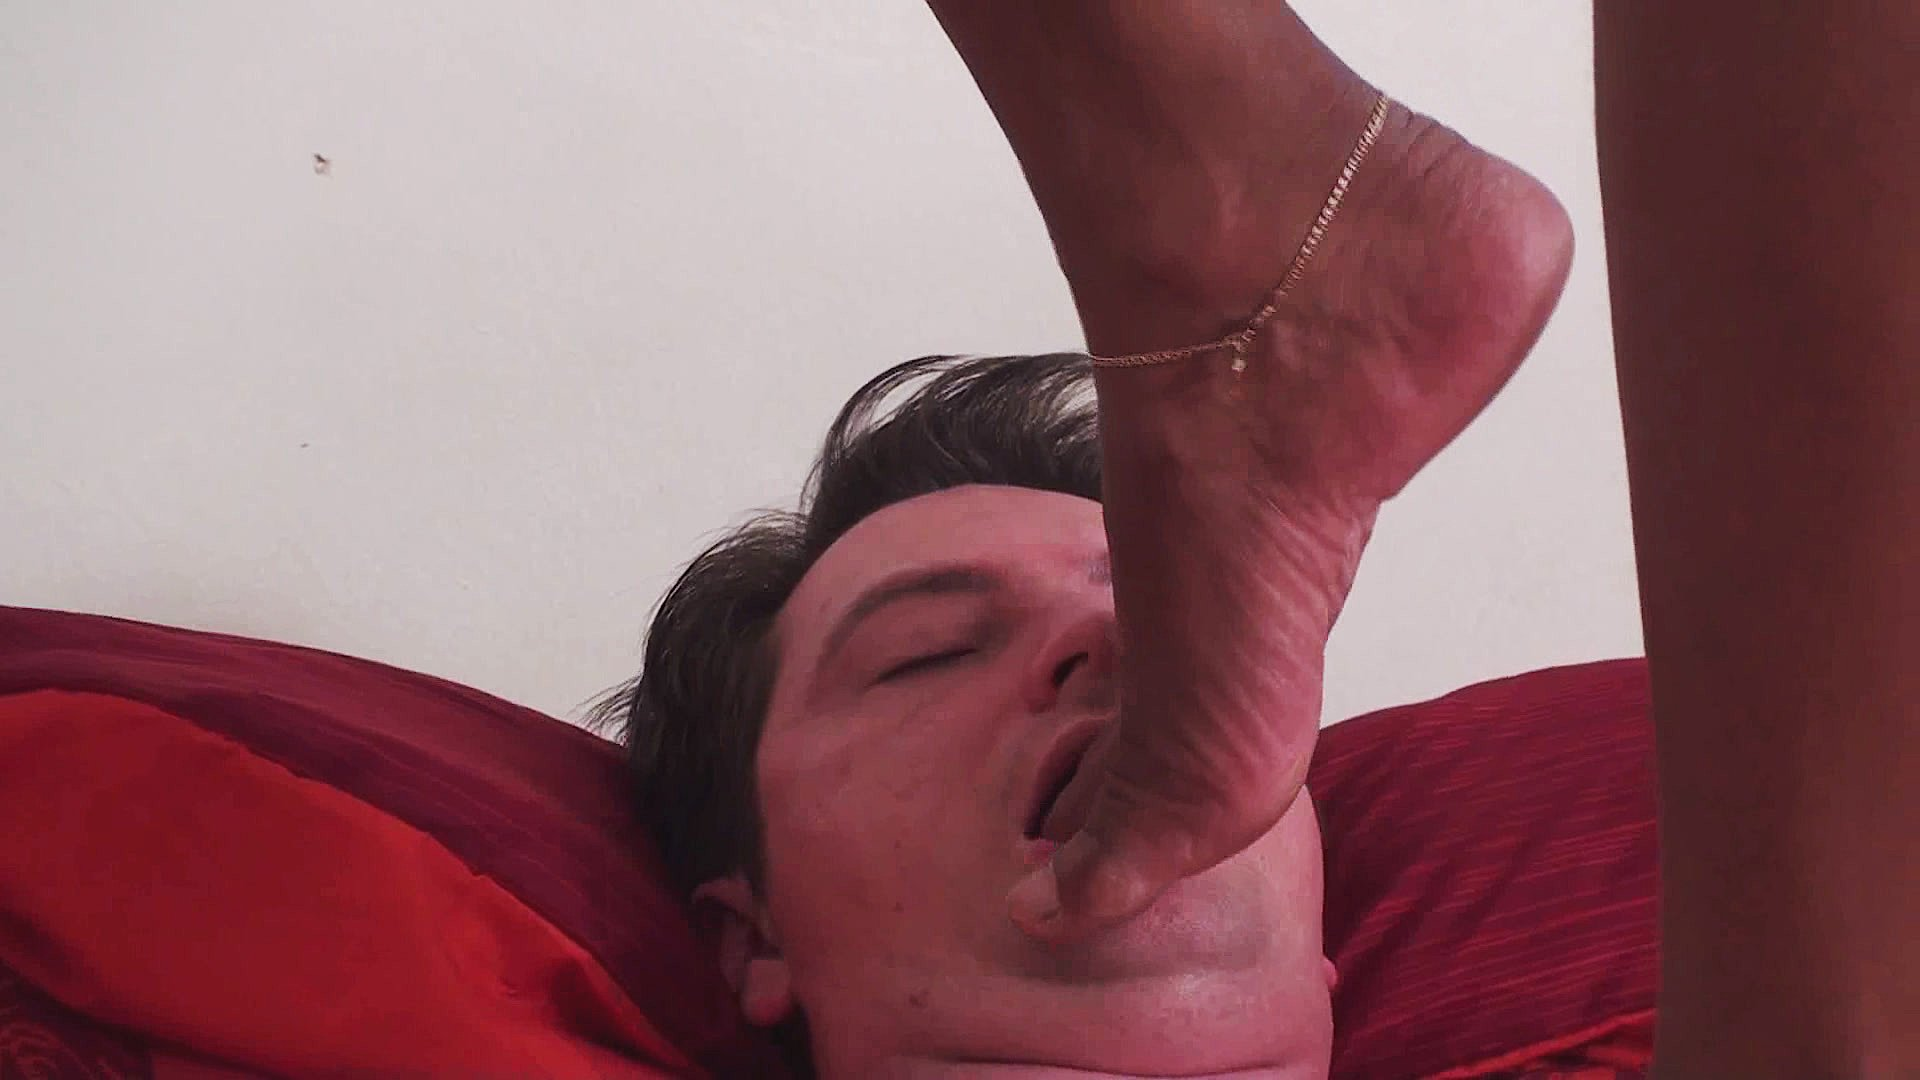 Nude pics 2020 Feet in cm inches